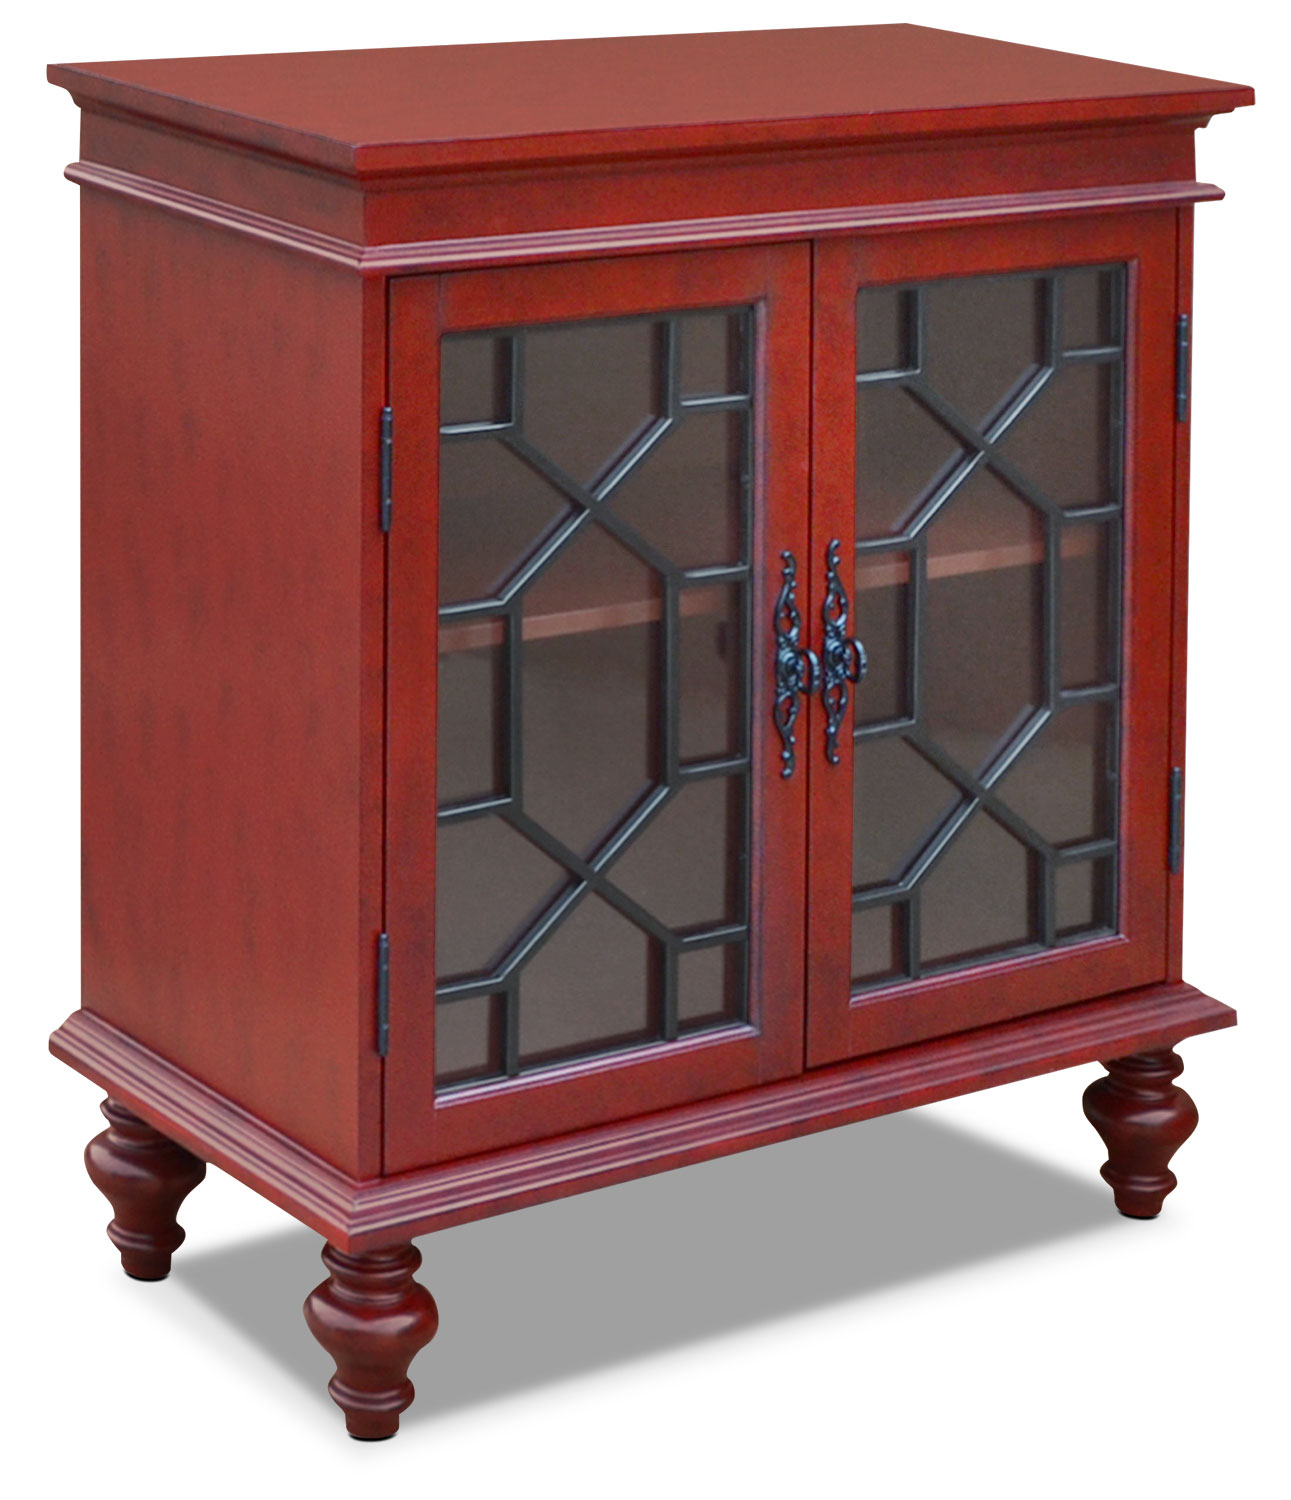 Rigolet Small Accent Cabinet – Red